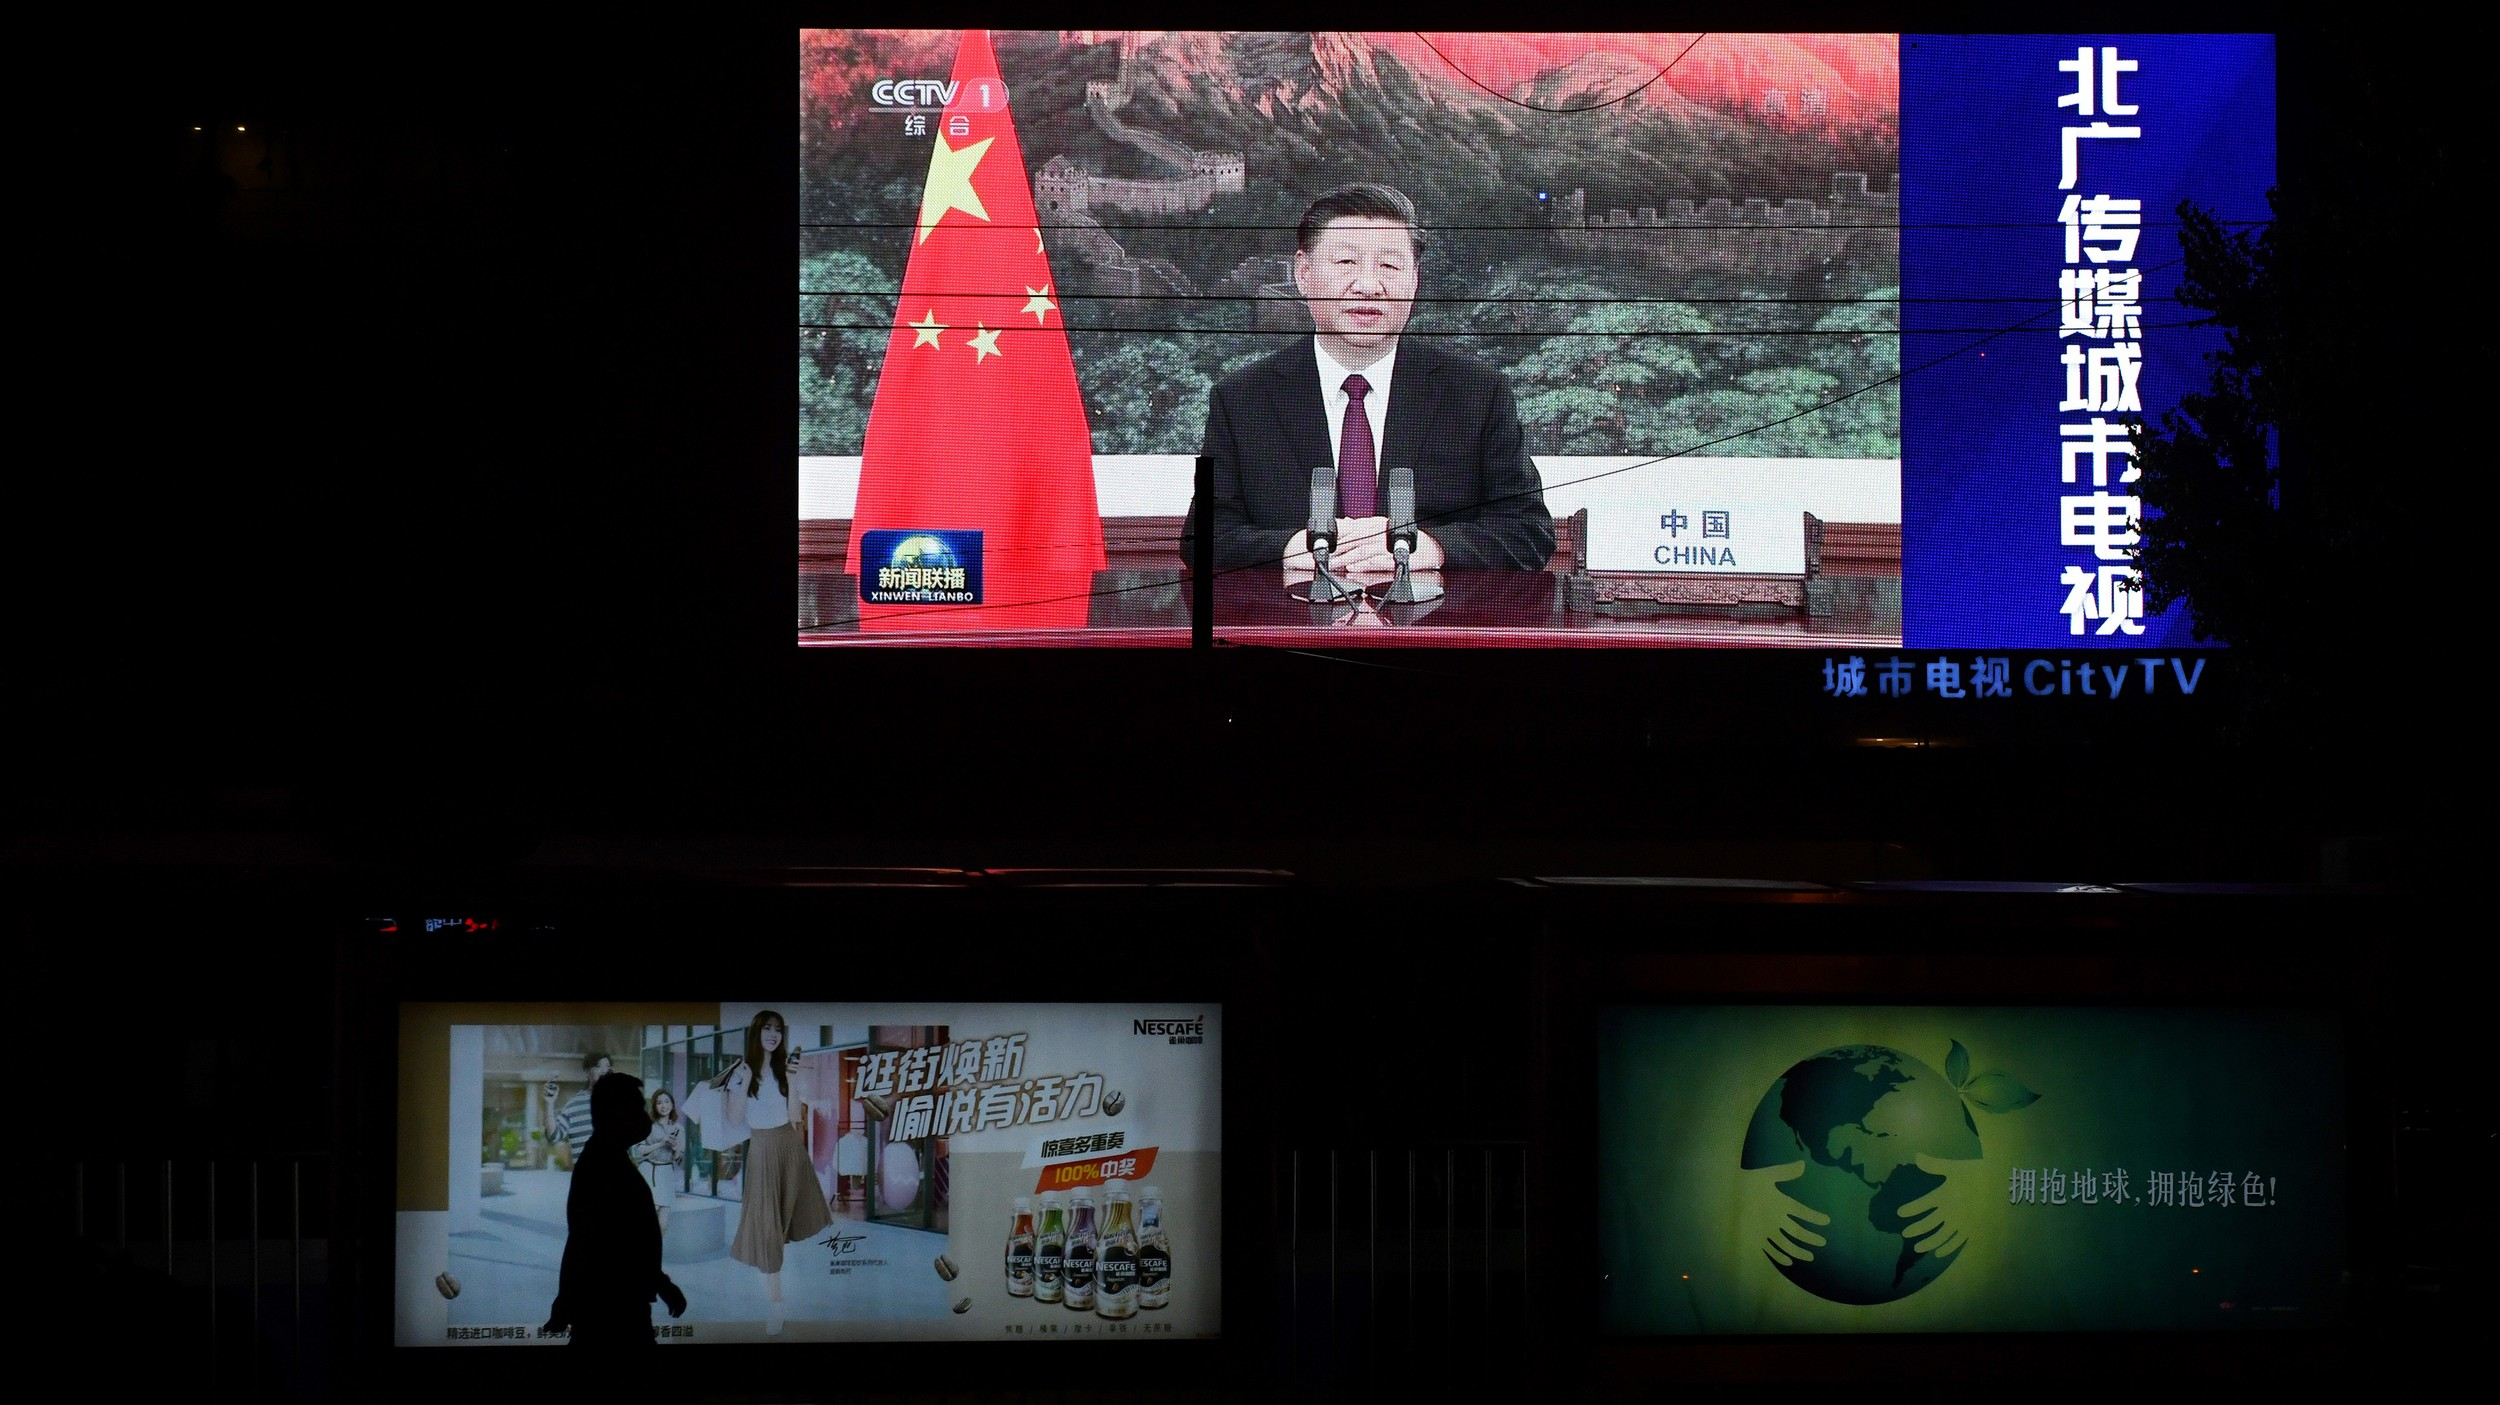 An image of Chinese President Xi Jinping appearing by video link at the United Nations 75th anniversary is seen on an outdoor screen as a pedestrian walks past below in Beijing, Sept. 22, 2020.